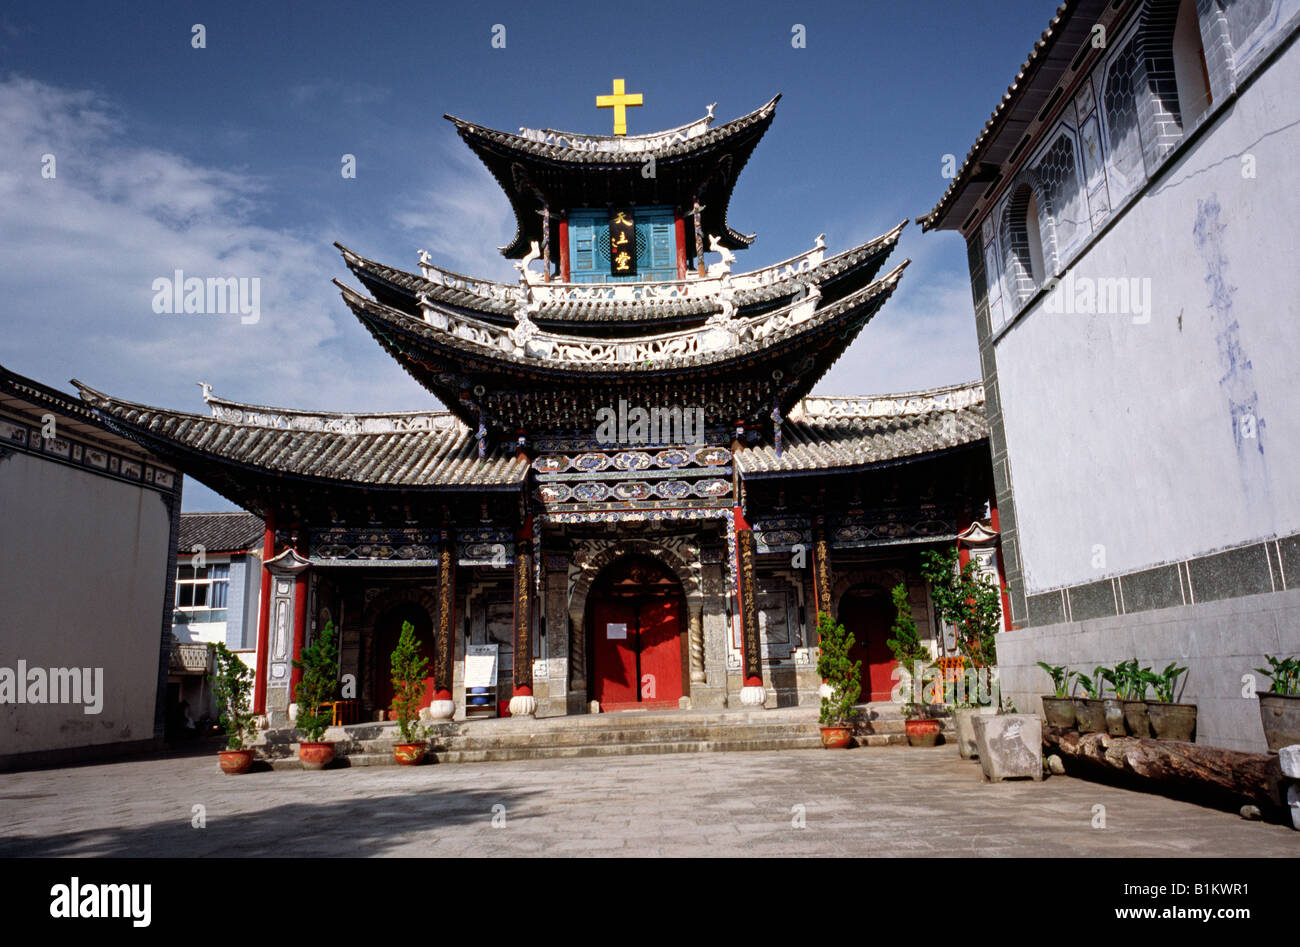 Aug 15, 2006 - Christian church built like a pagoda in Dali (Old Town) in the Chinese province of Yunnan. - Stock Image